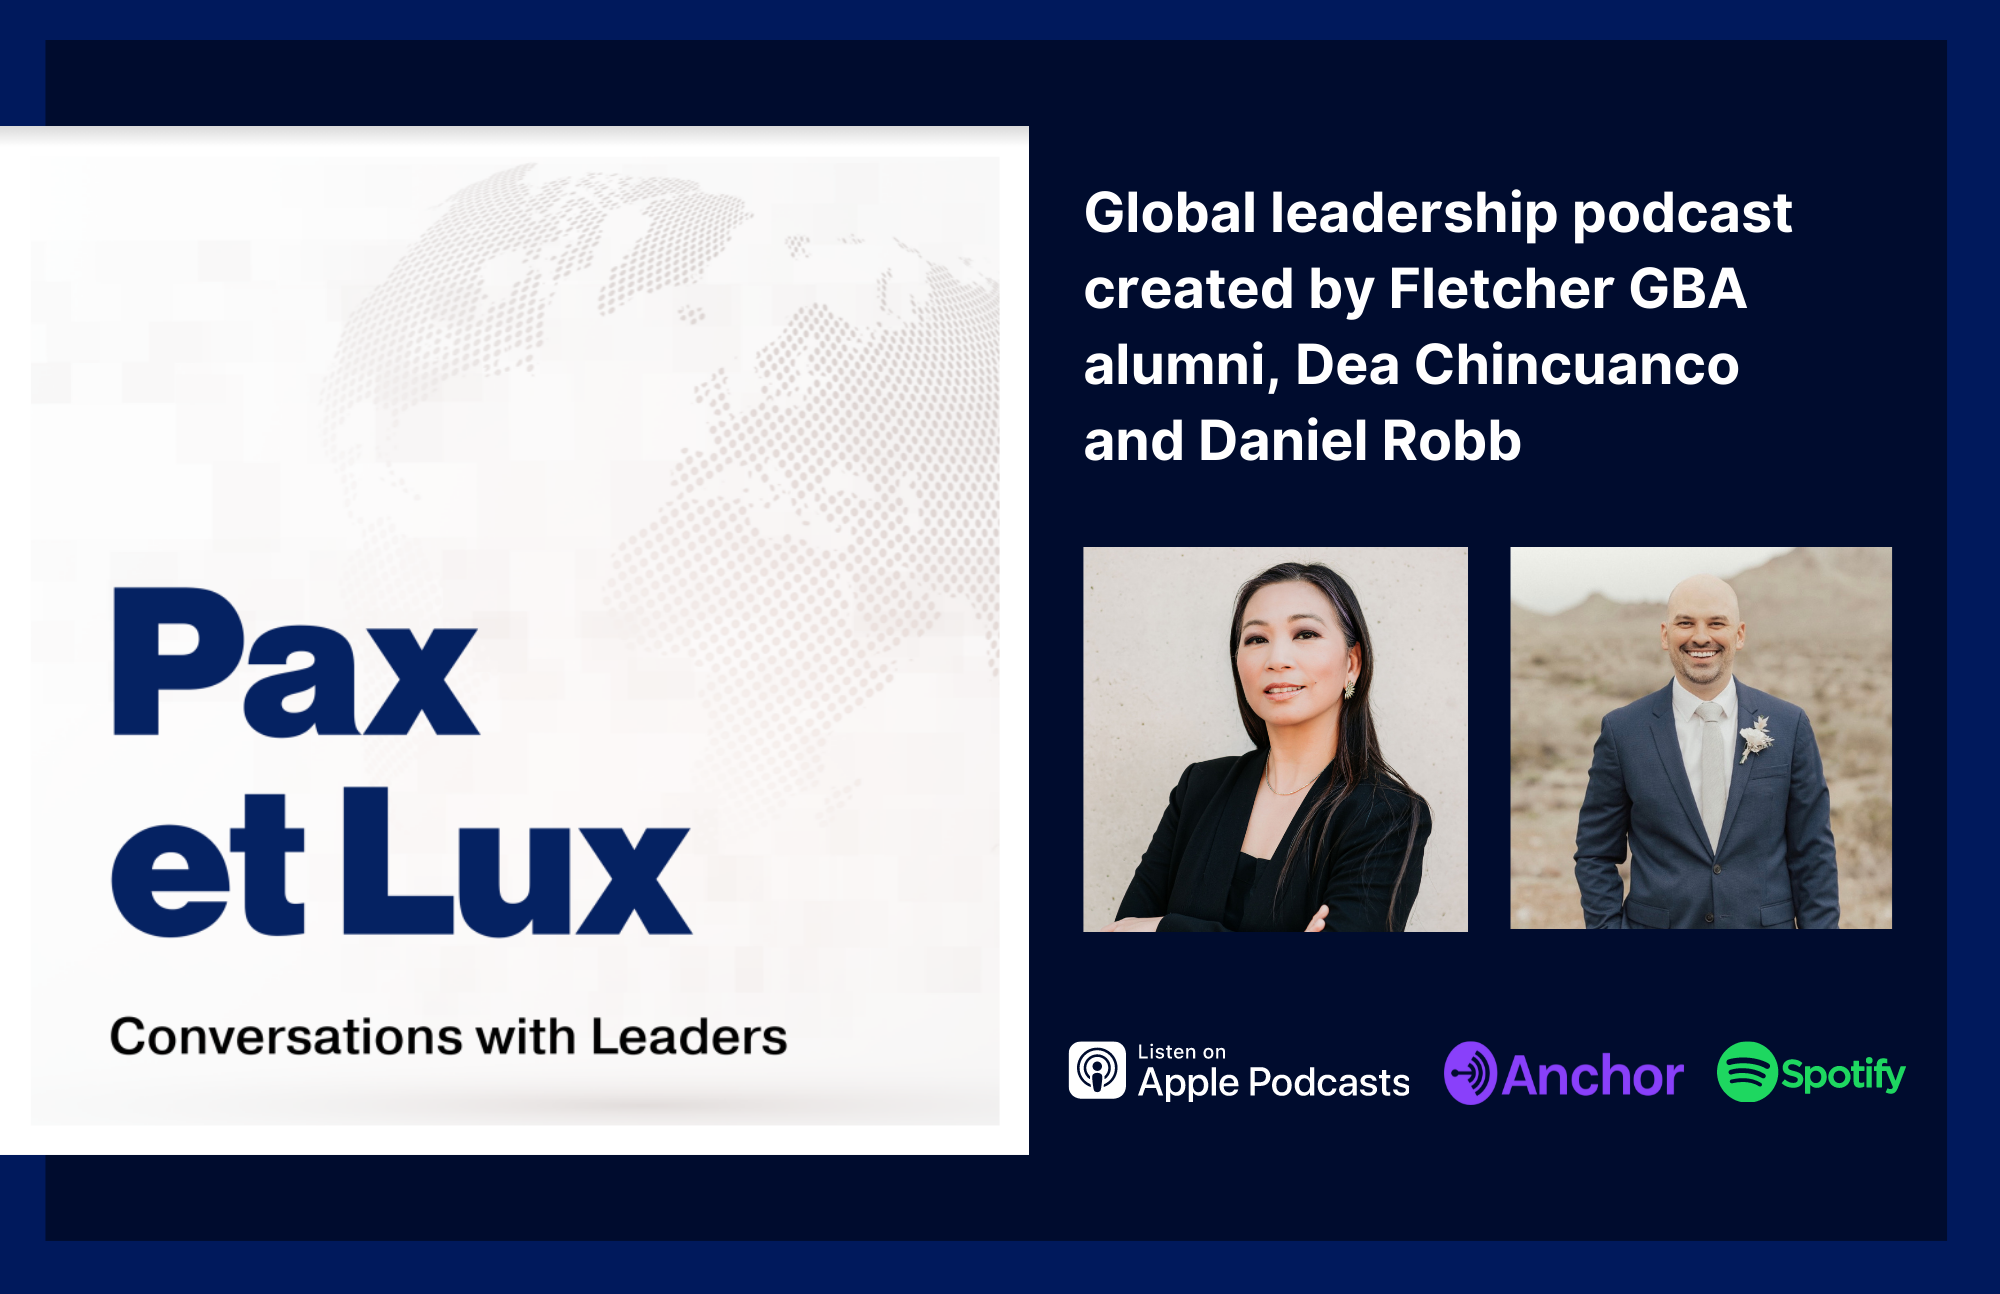 Pax et Lux: Conversations with Leaders Global leadership podcast created by Fletcher GBA alumni, Dea Chincuanco and Daniel Robb [photos of Dea Chincuanco and Dan Robb. Symbols for Apple Podcasts, Anchor, and Spotify]